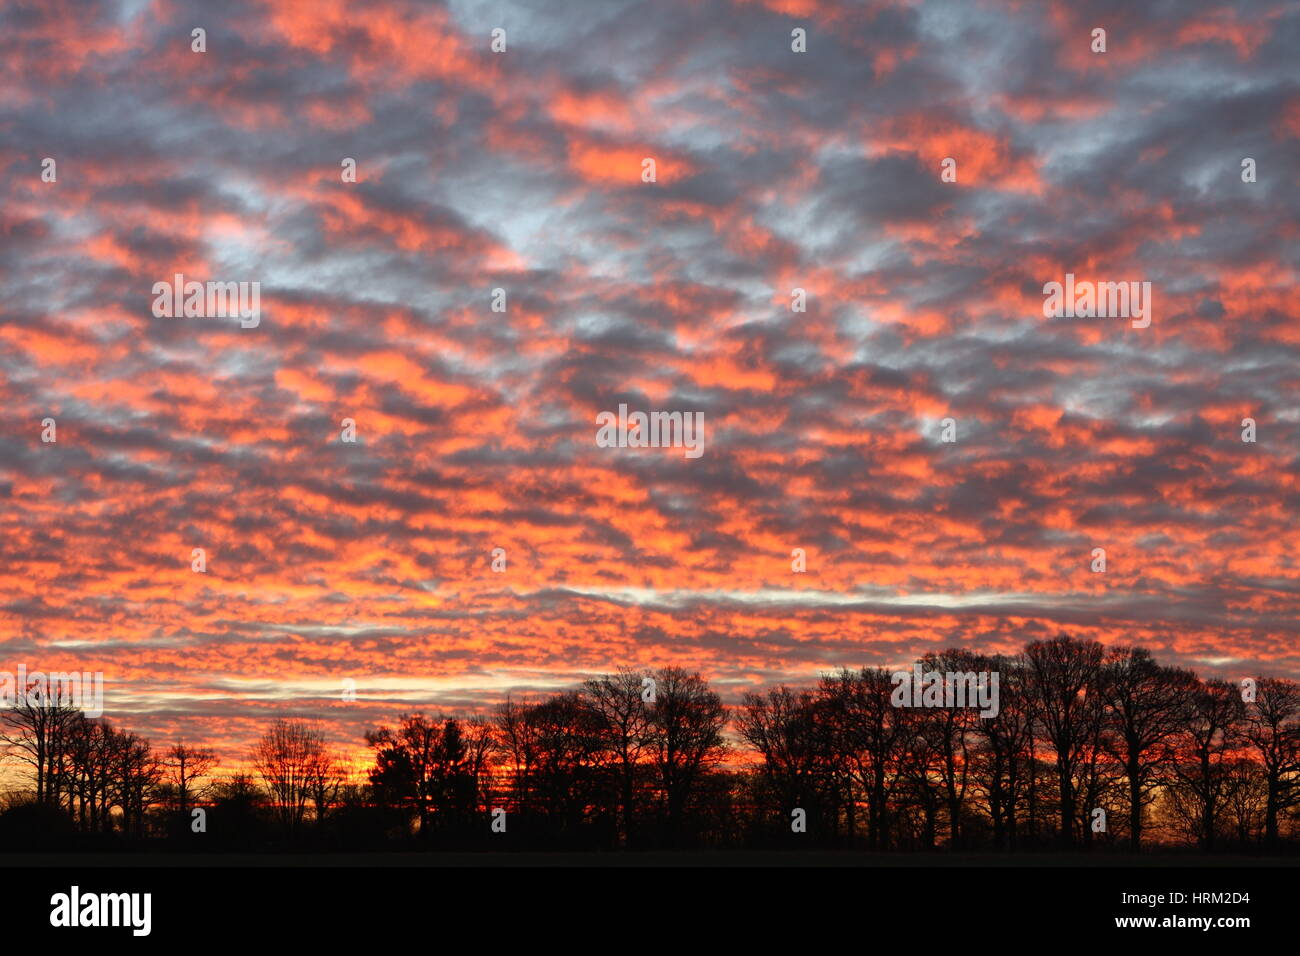 A treeline and sky just before a winter sunrise in Wittershaam, Kent, England. Stock Photo